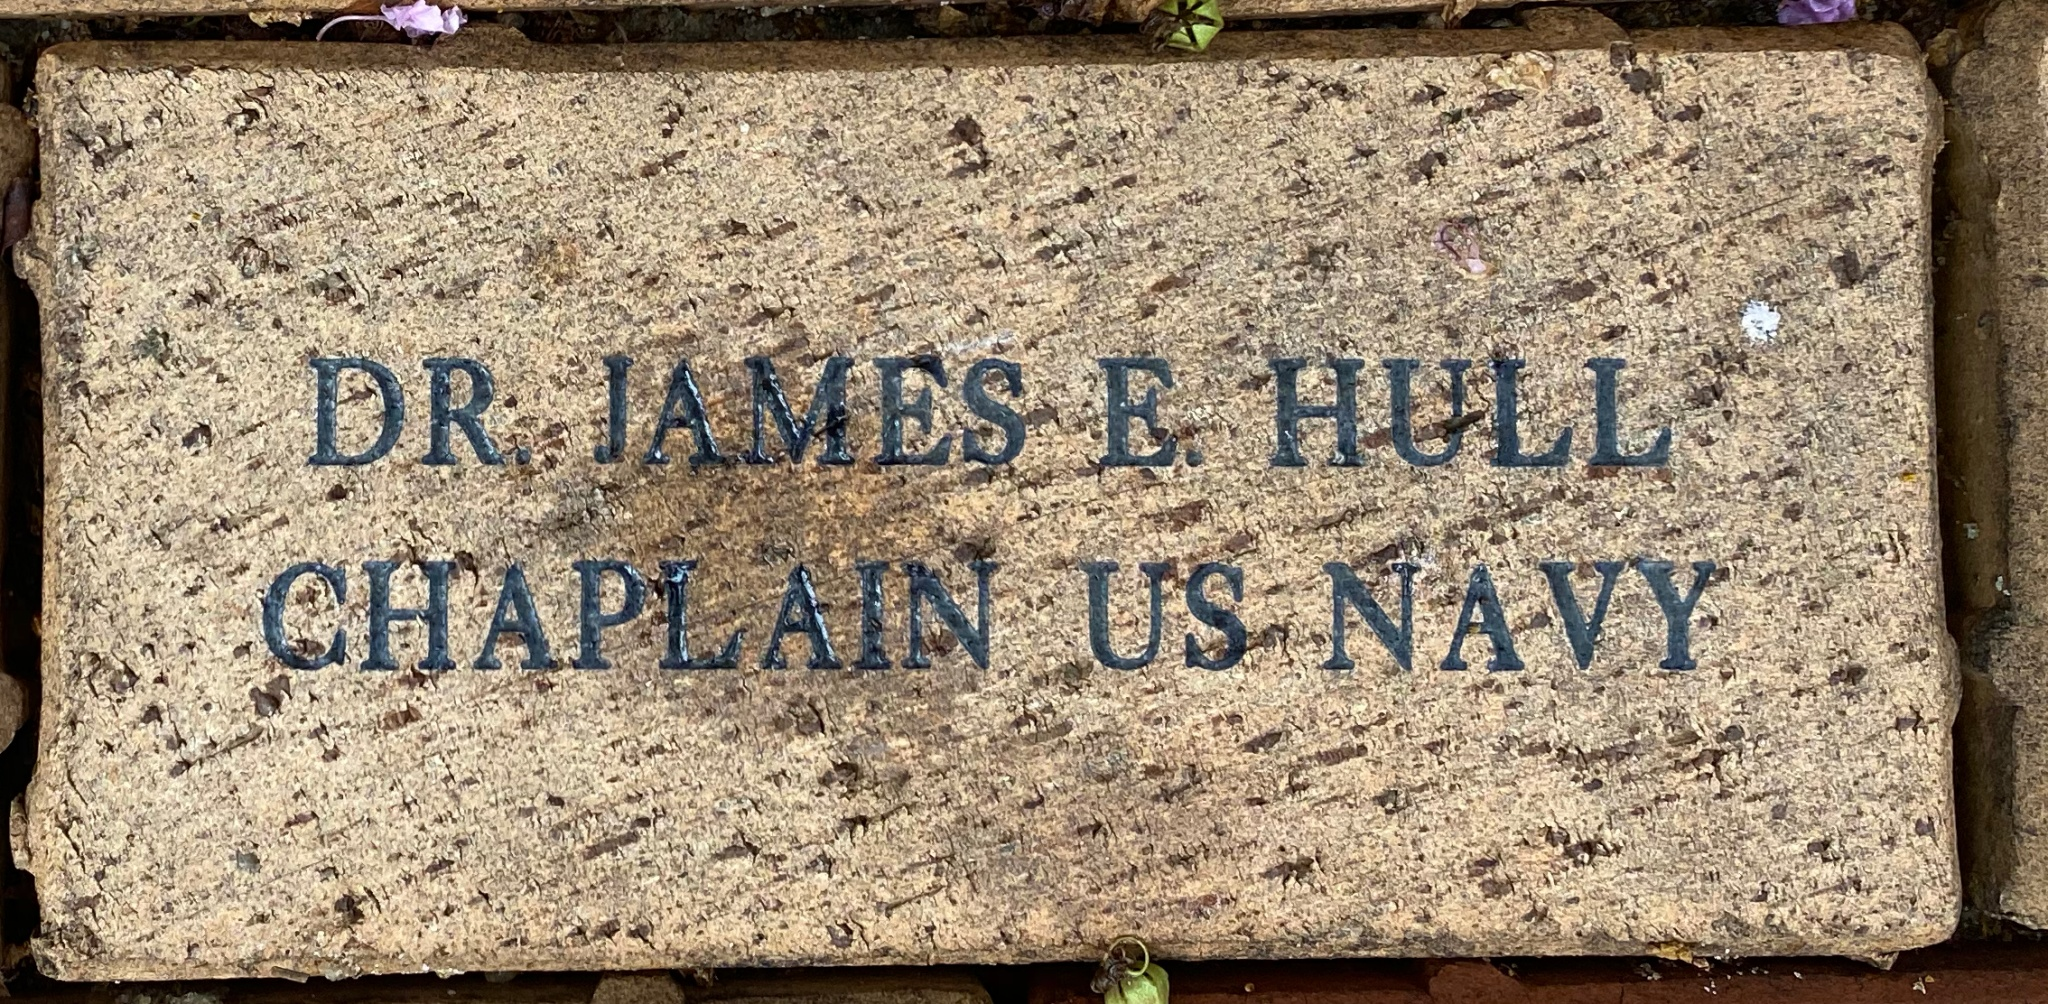 DR. JAMES E. HULL CHAPLAIN US NAVY